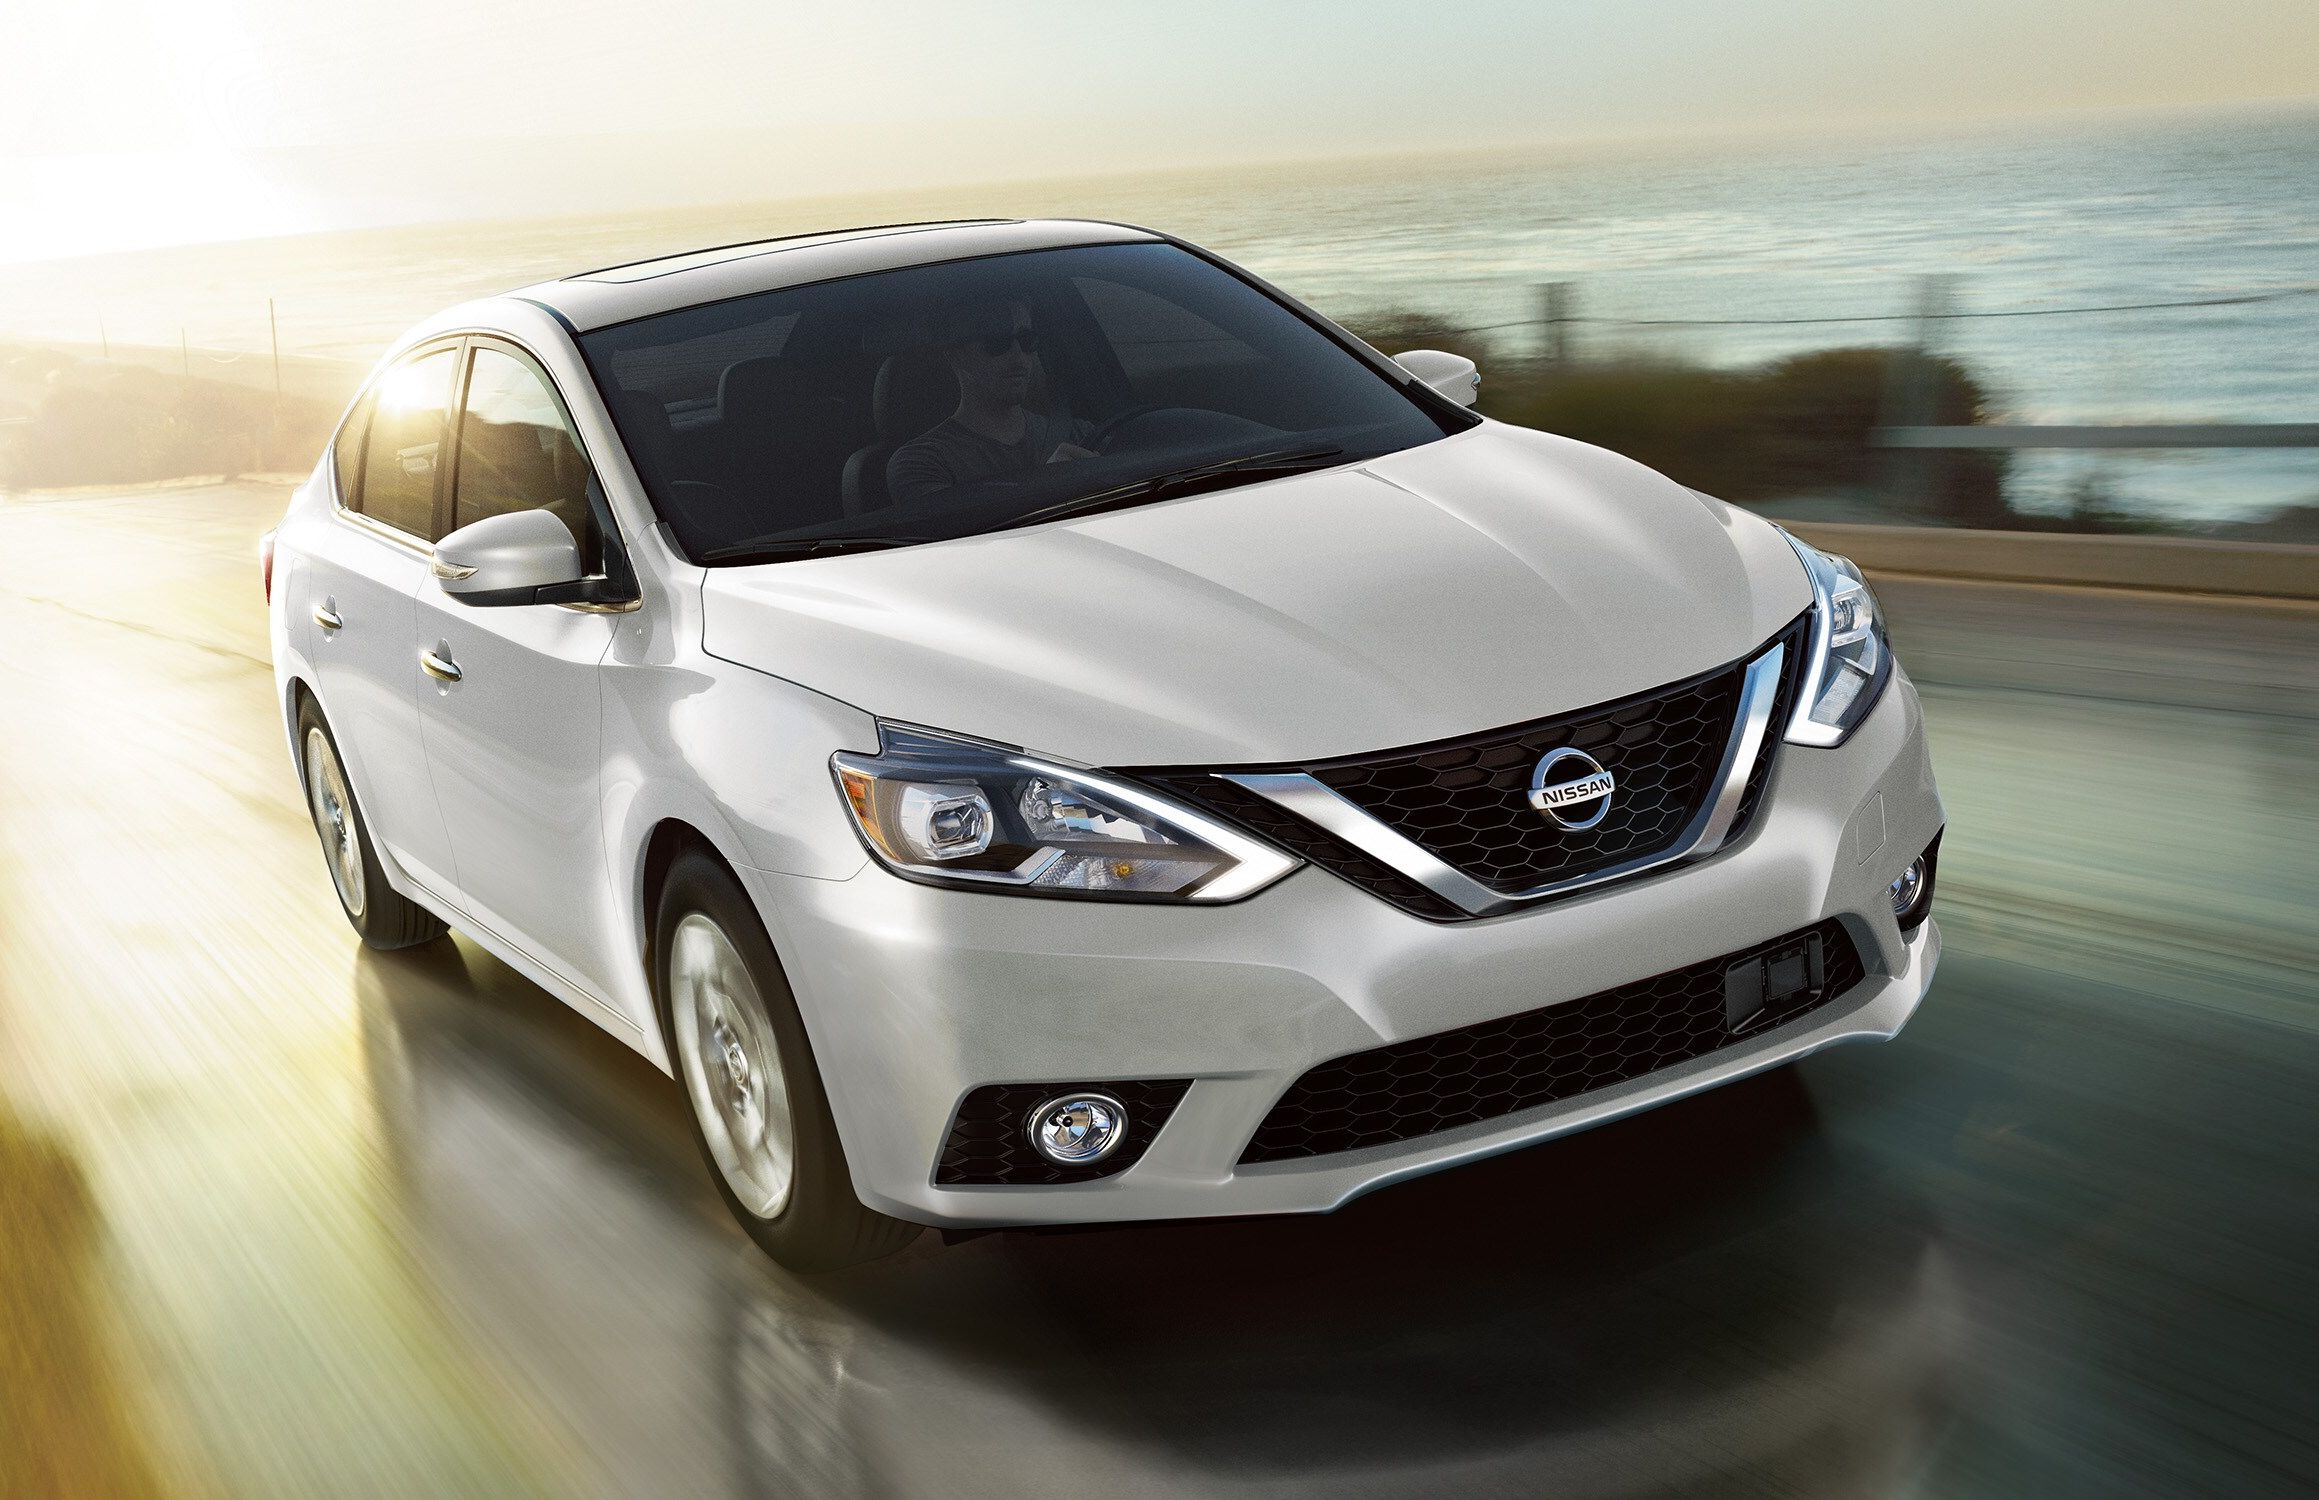 2019 Nissan Sentra Leasing near Morton Grove, IL